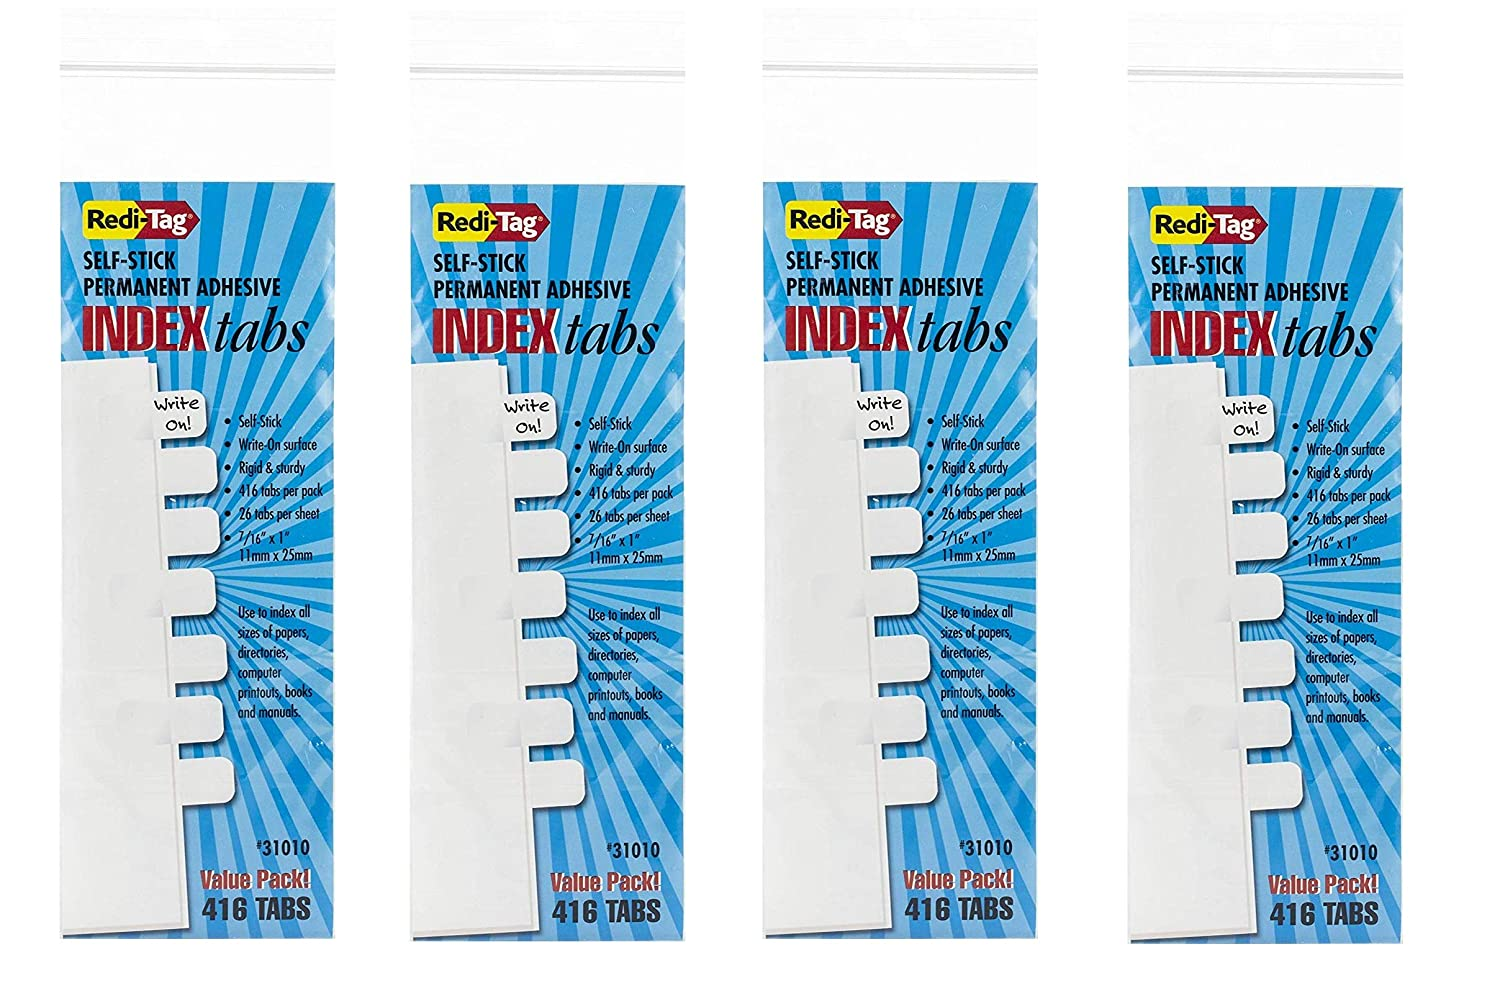 Redi-Tag Customizable Write-On Index Tabs, Permanent Adhesive Sticks to  Page, 7/16 x 1 Inches, Bulk Packed, 416 tabs Per Pack, White (31010)